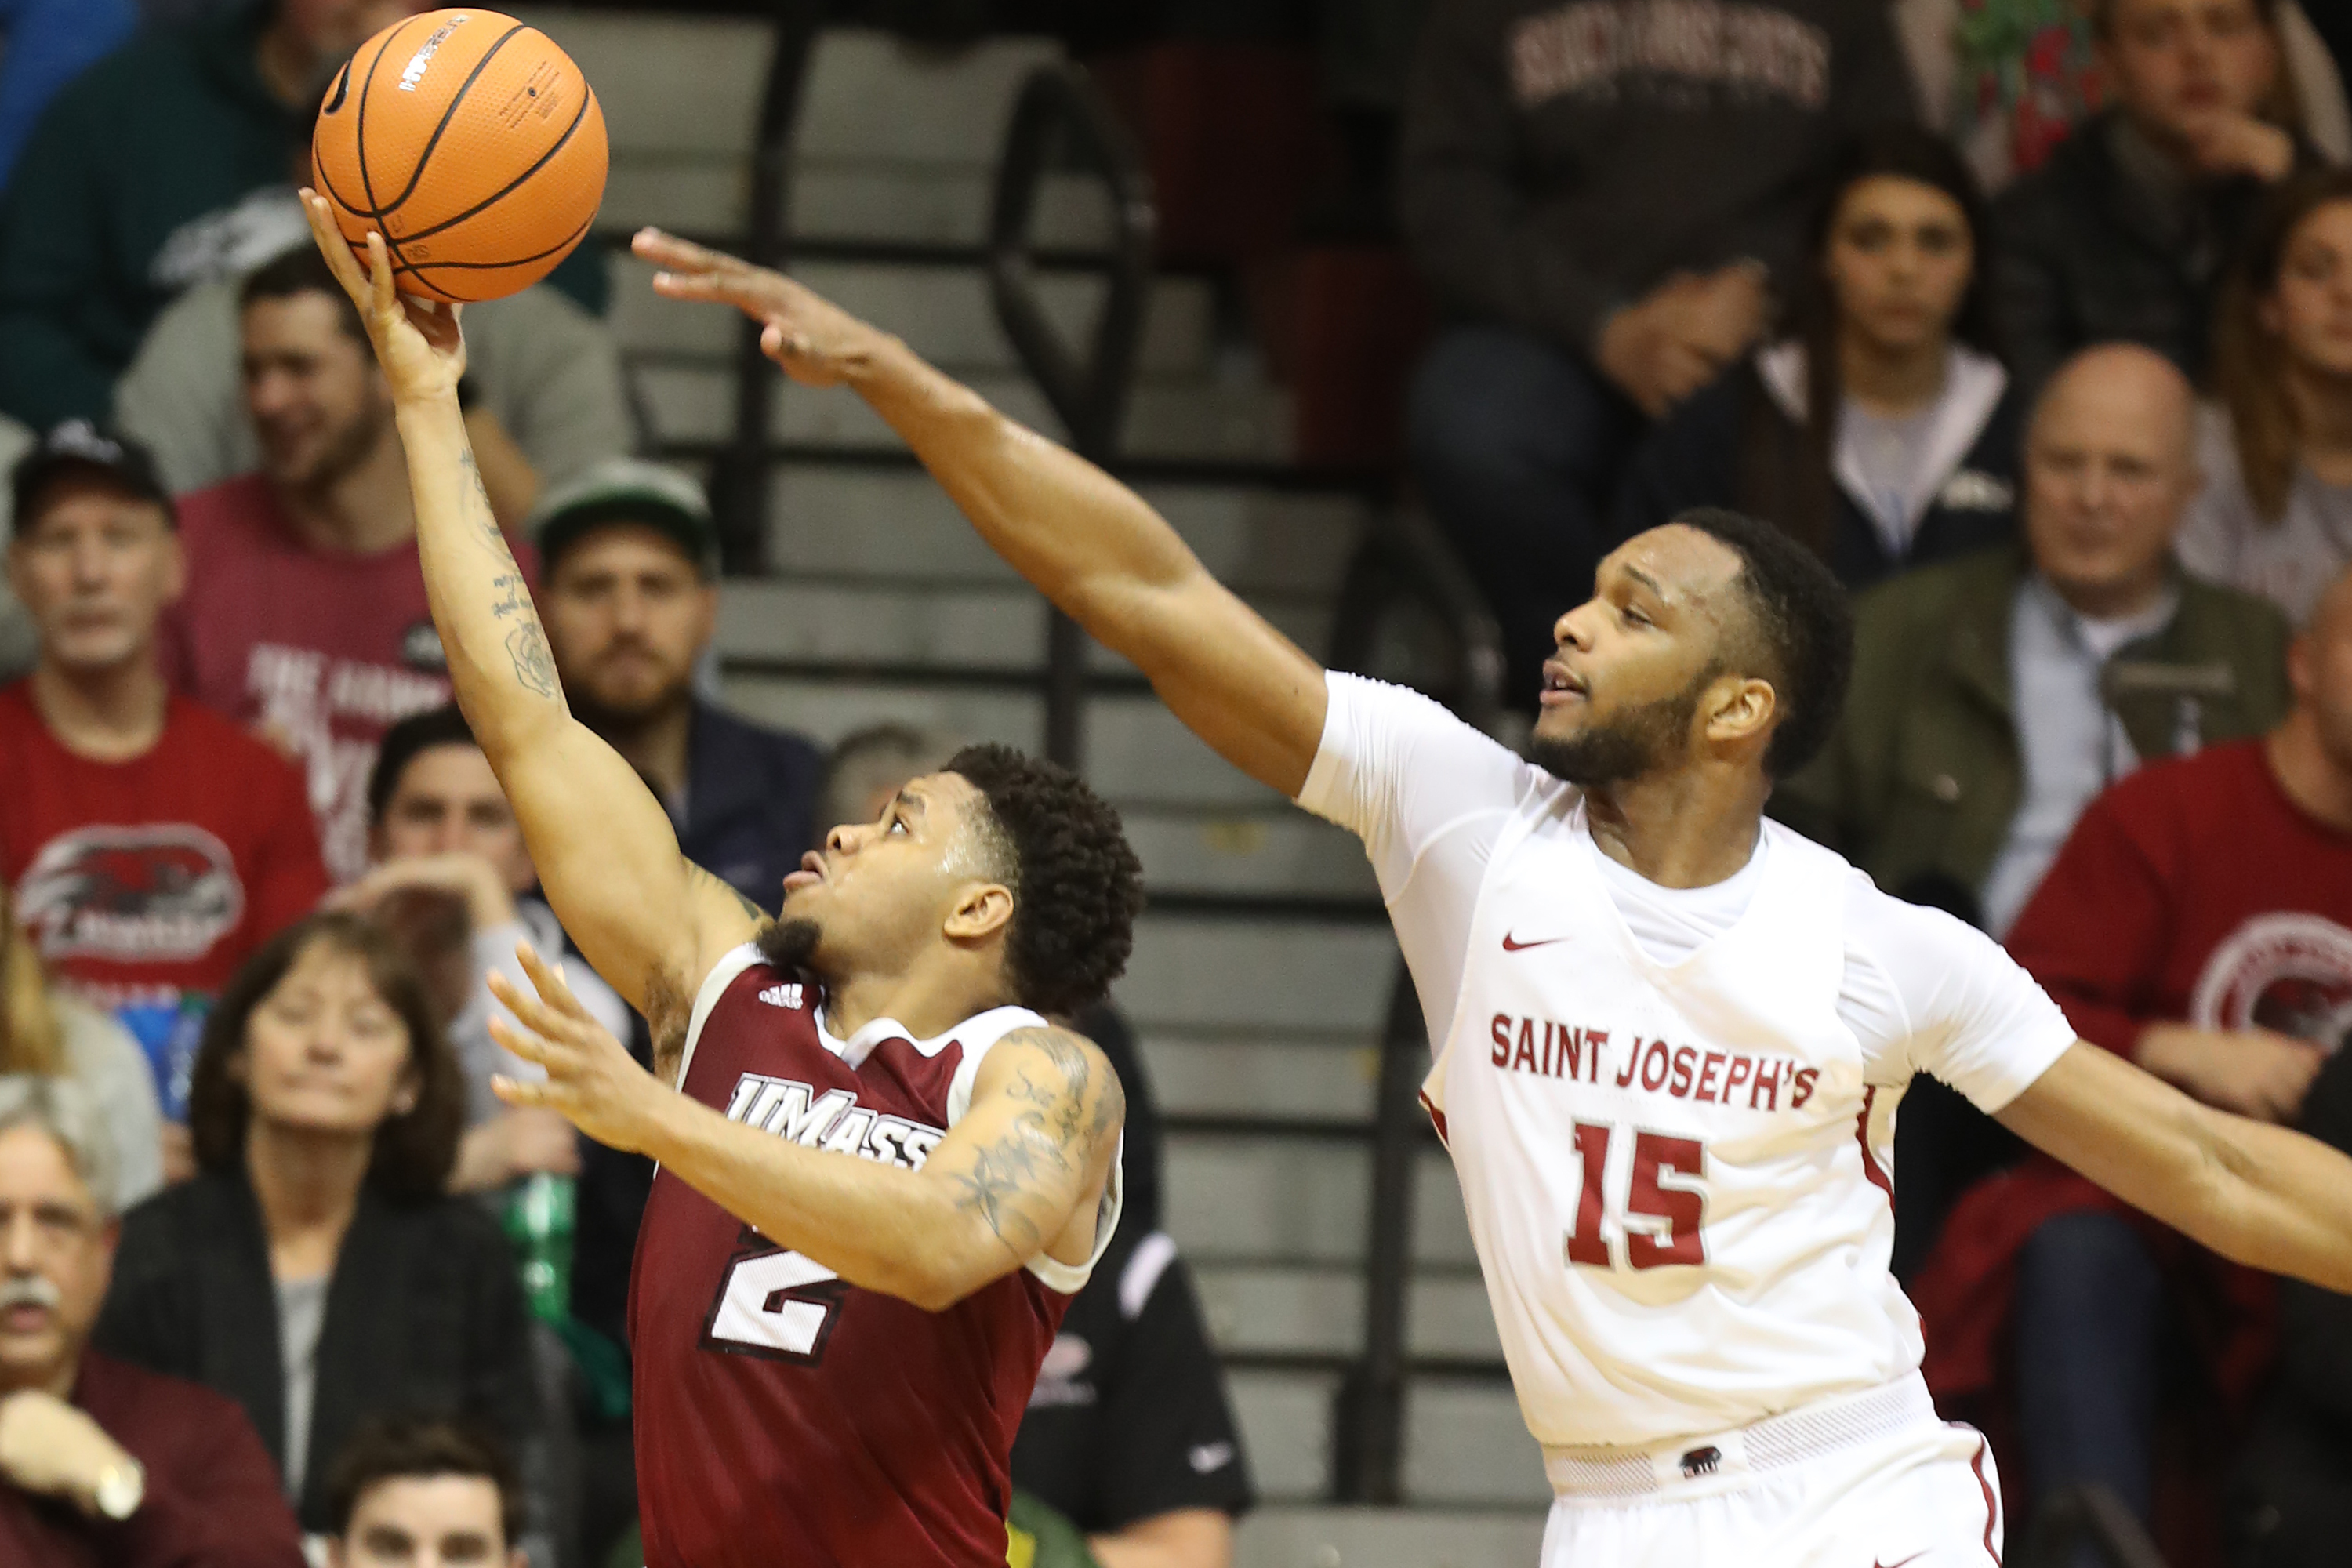 Chris Clover, right, of St. Joseph's barely misses blocking a shot by Luwane Pipkins of Massachusetts during the 2nd half at Hagan Arena on Feb. 10, 2018. CHARLES FOX / Staff Photographer